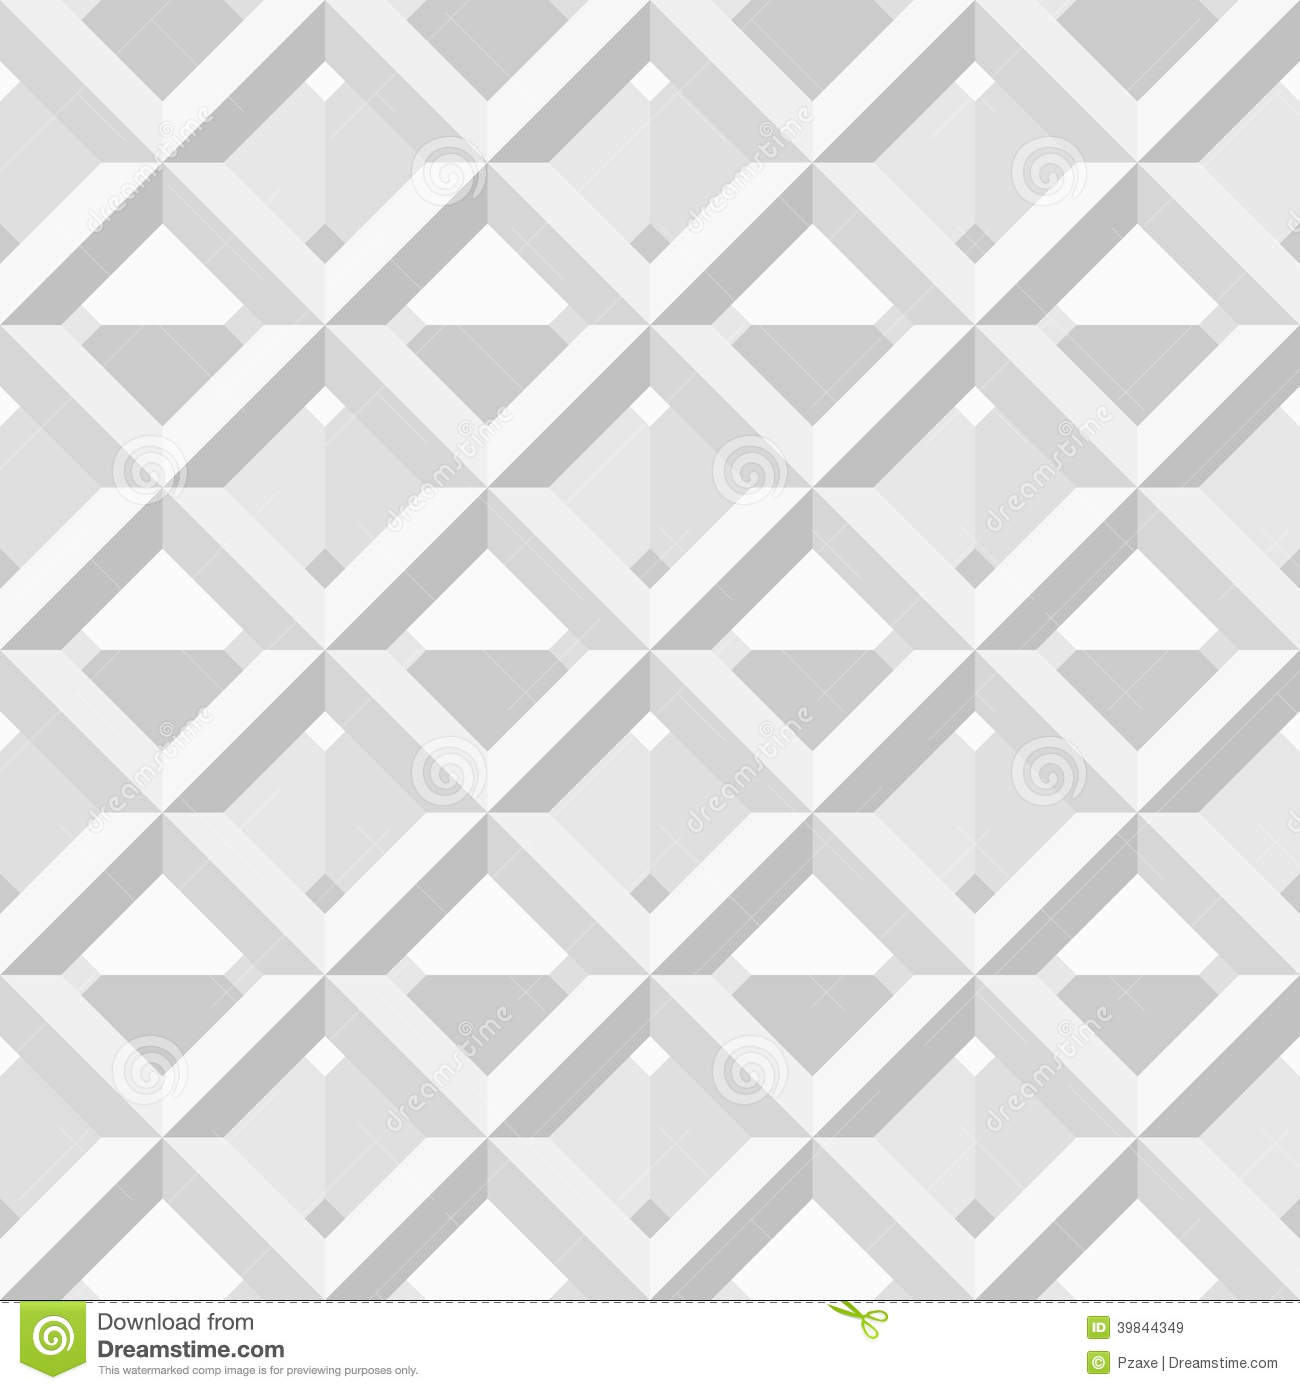 Modern Geometric Background Patterns